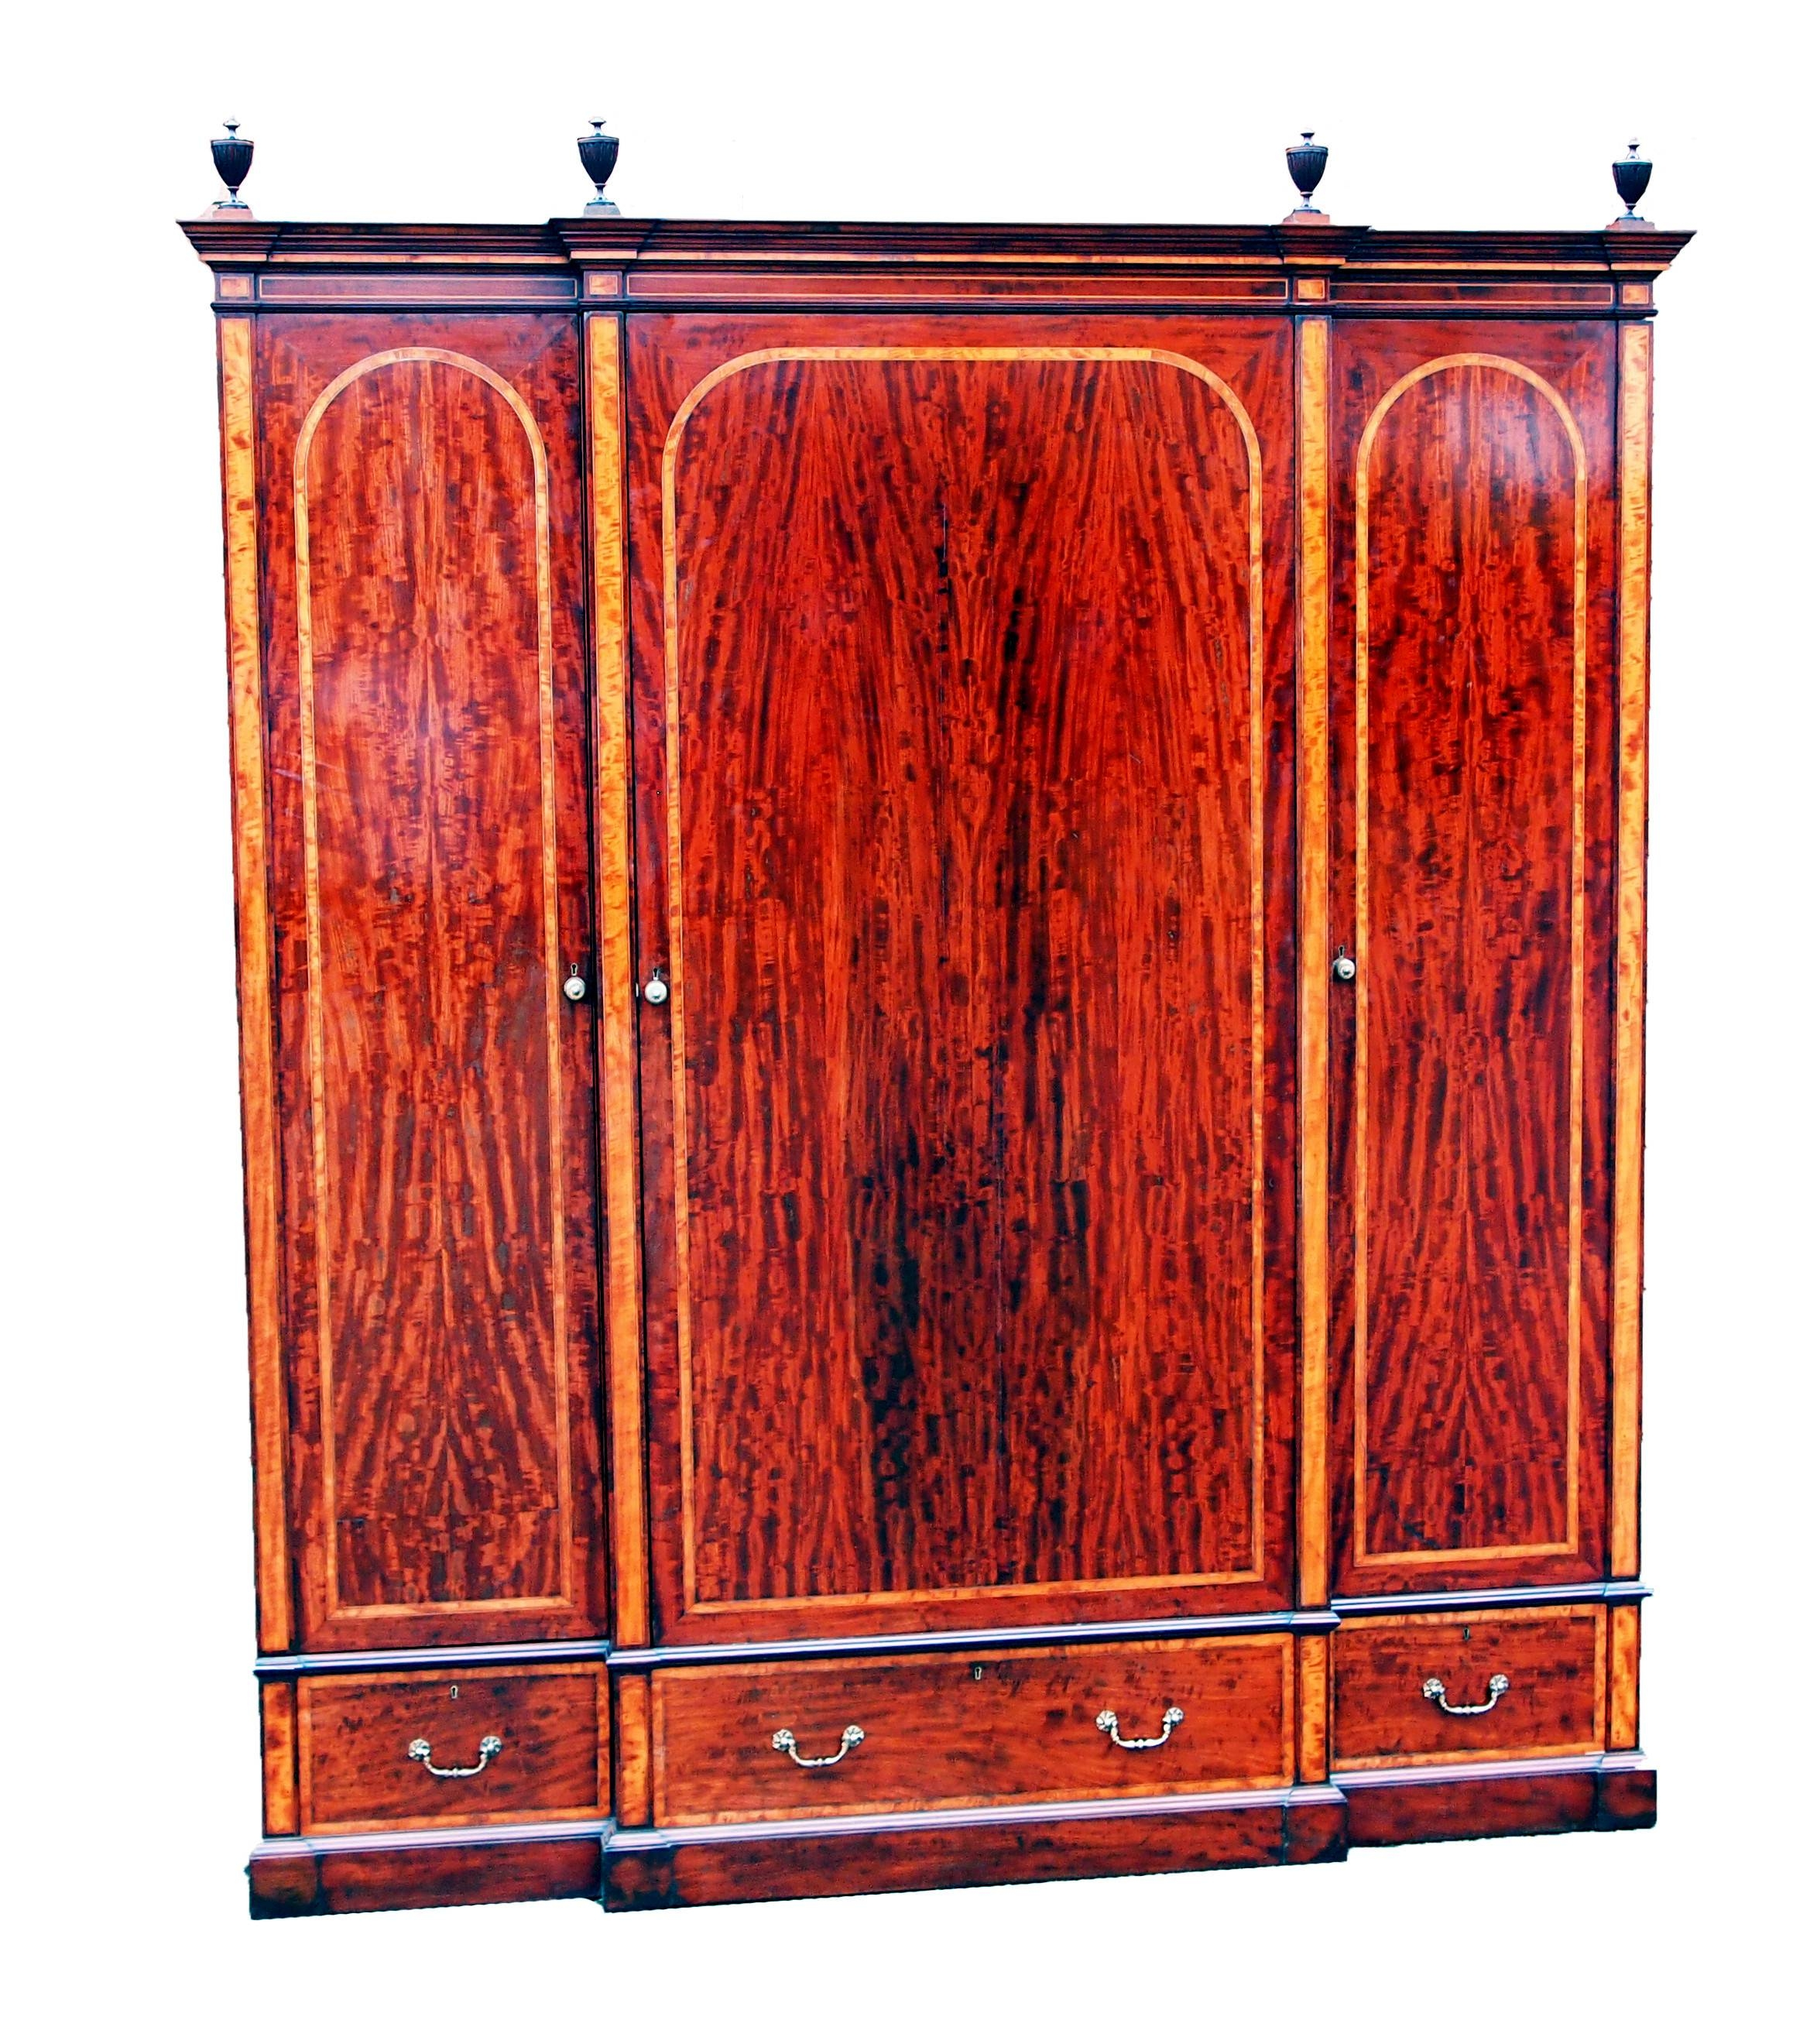 Antique Mahogany Breakfront Wardrobe (C. 1850 England) From S & S throughout Antique Breakfront Wardrobe (Image 4 of 30)